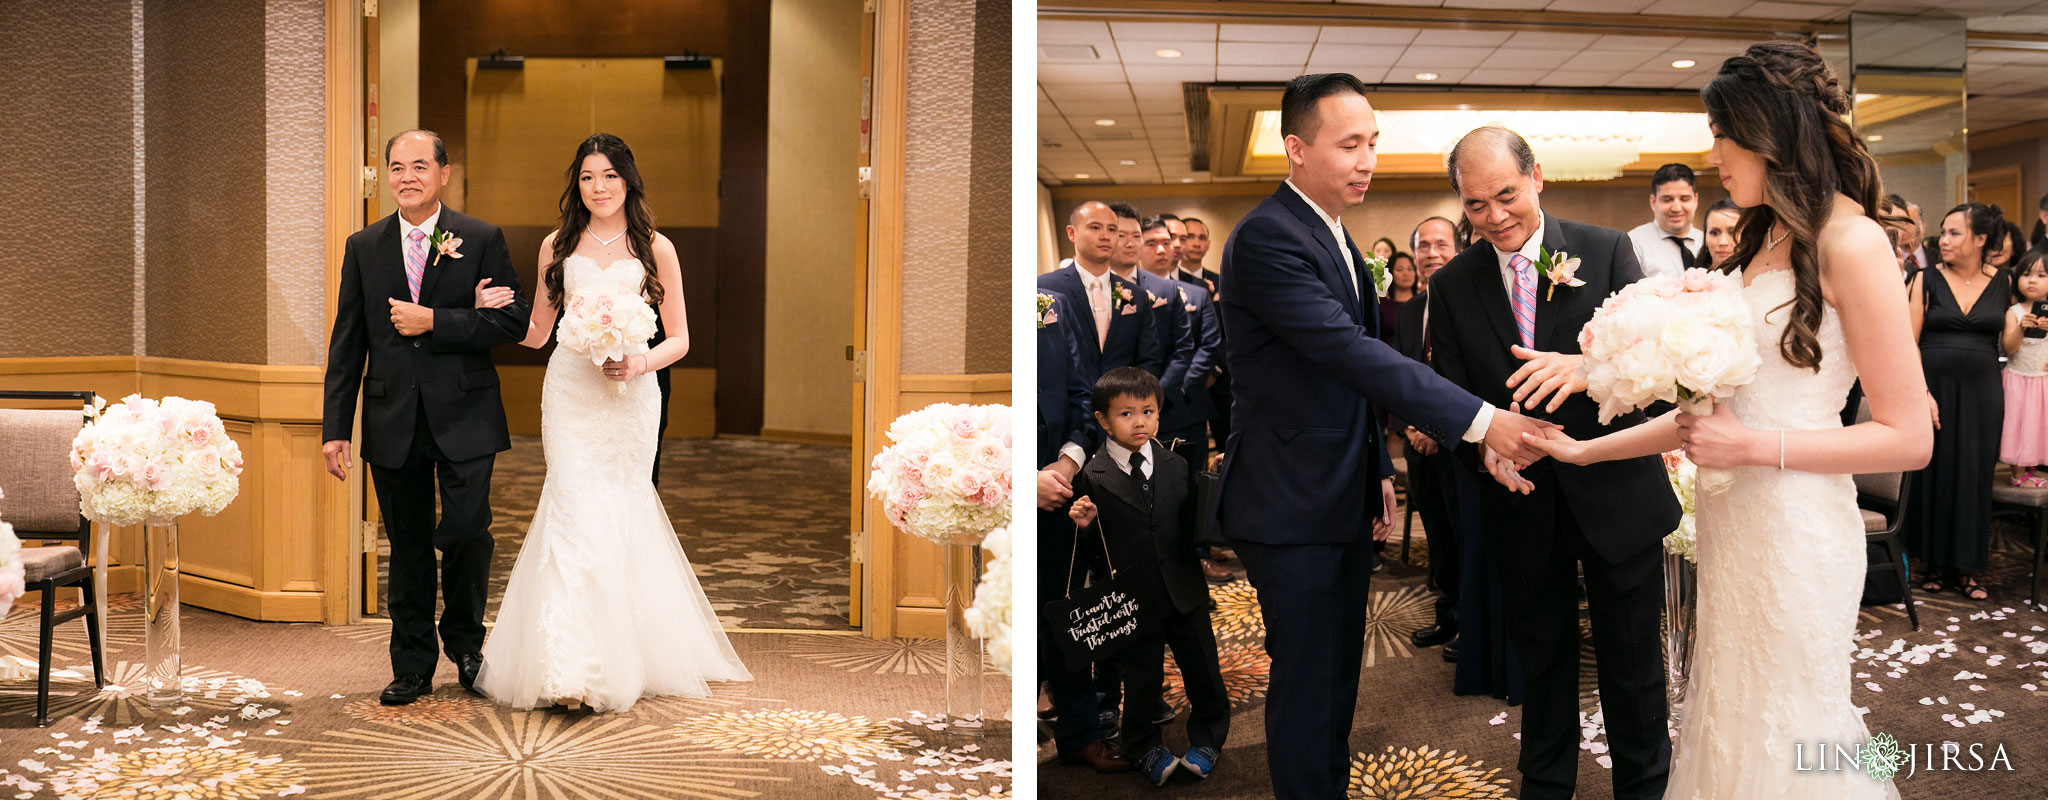 25 hilton costa mesa wedding ceremony photography